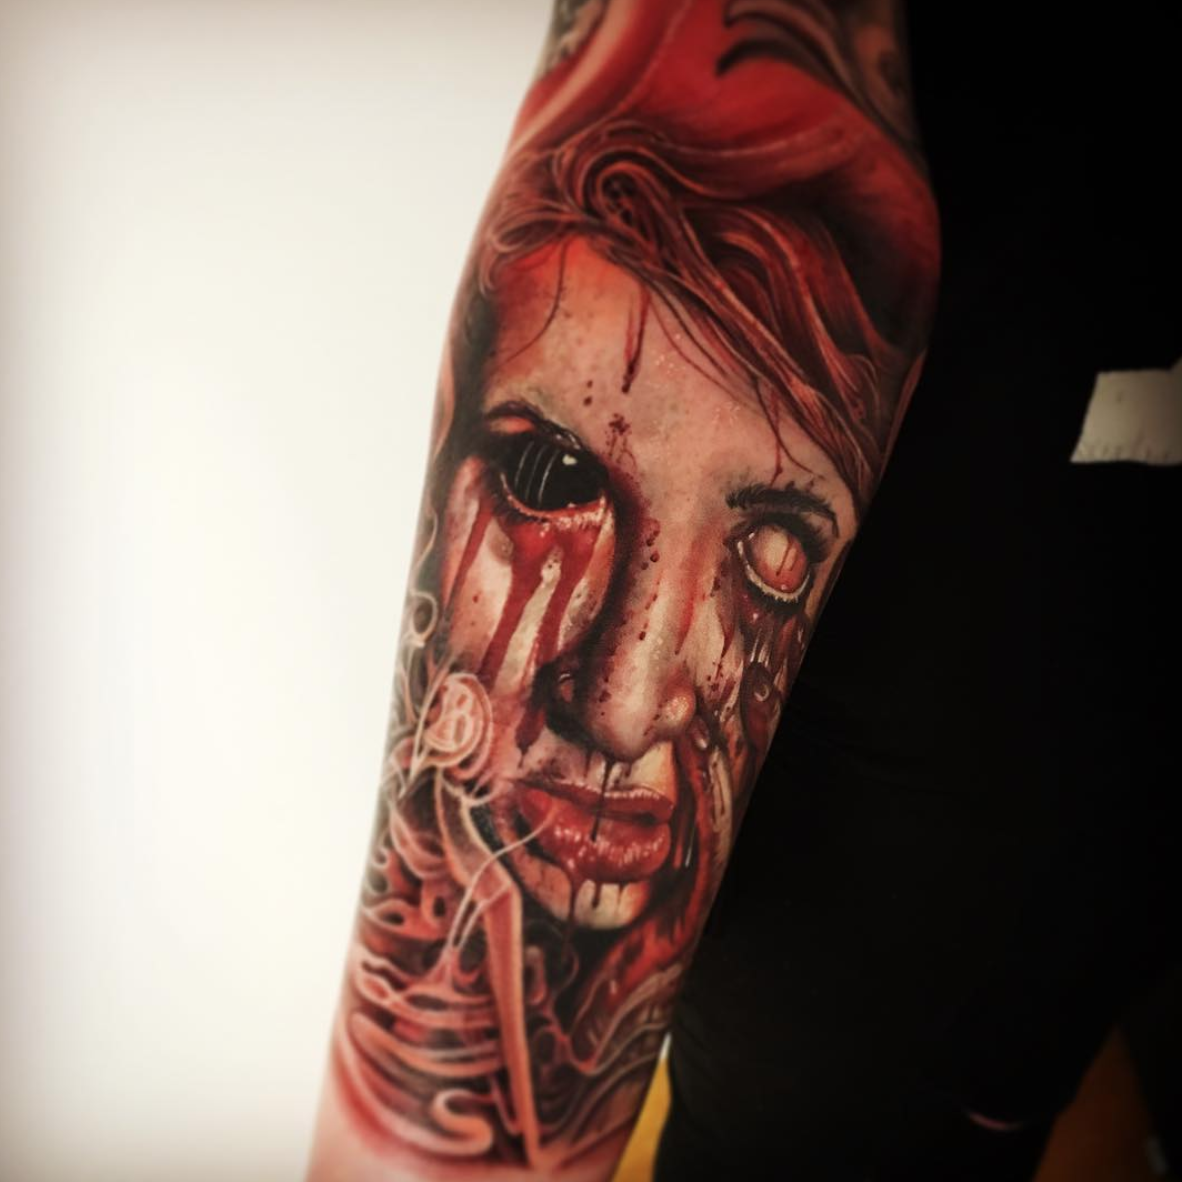 Bloody horror sleeve by @mario_hartmann_tattooist